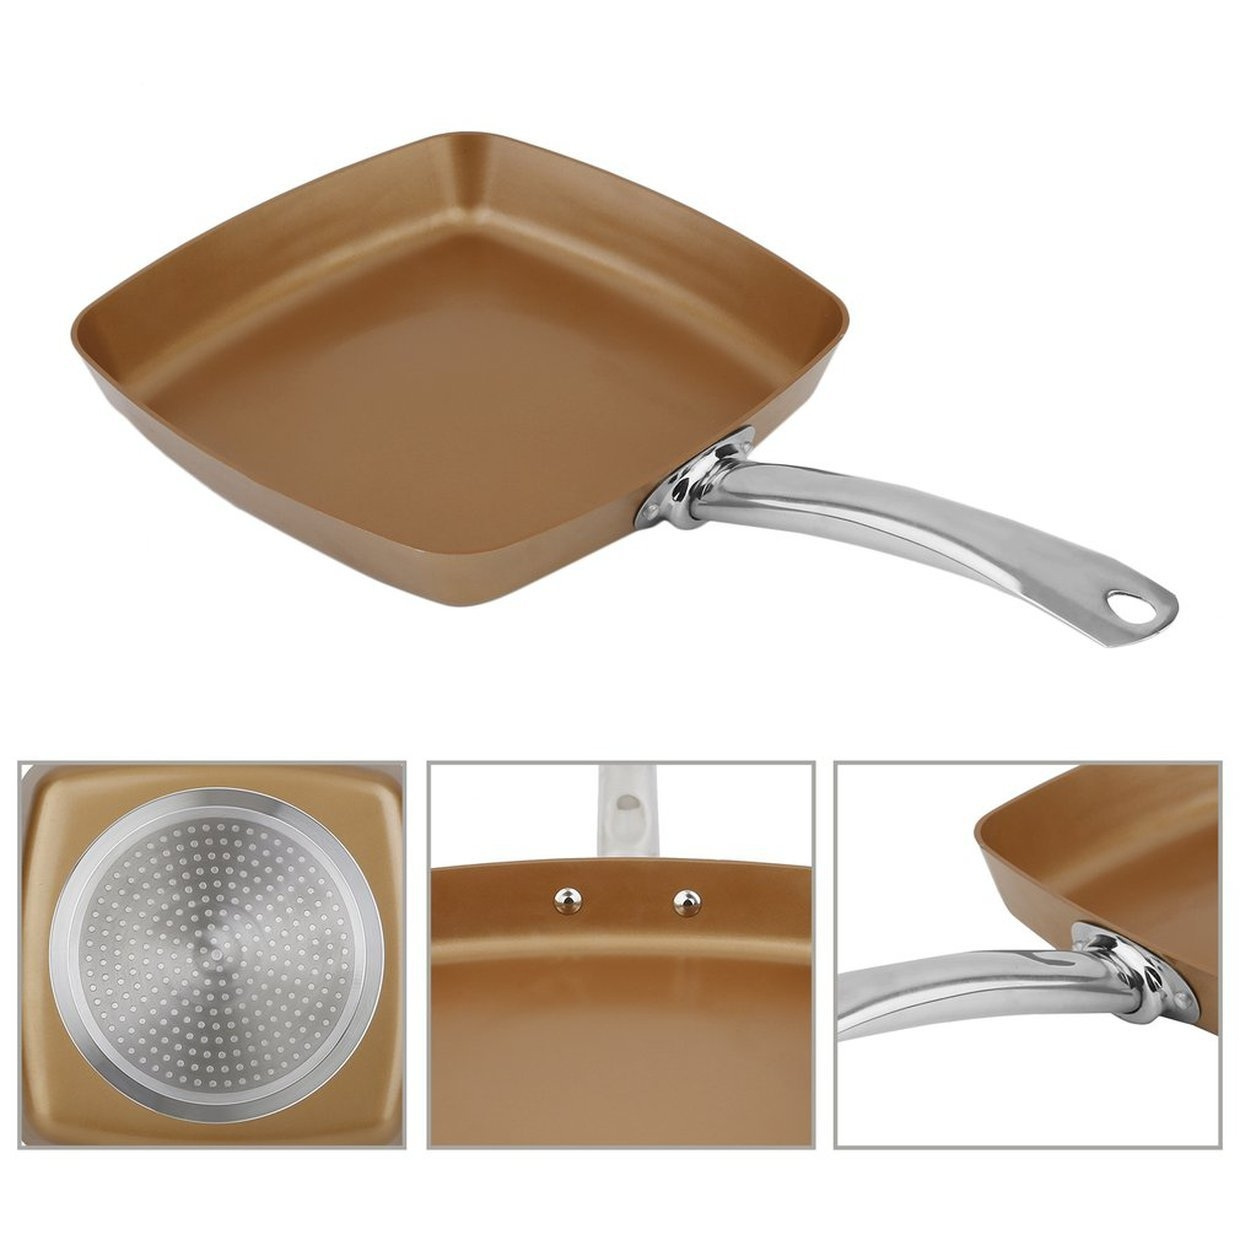 Buy Generic Square Non-Stick Copper Coating Frying Pan Safe